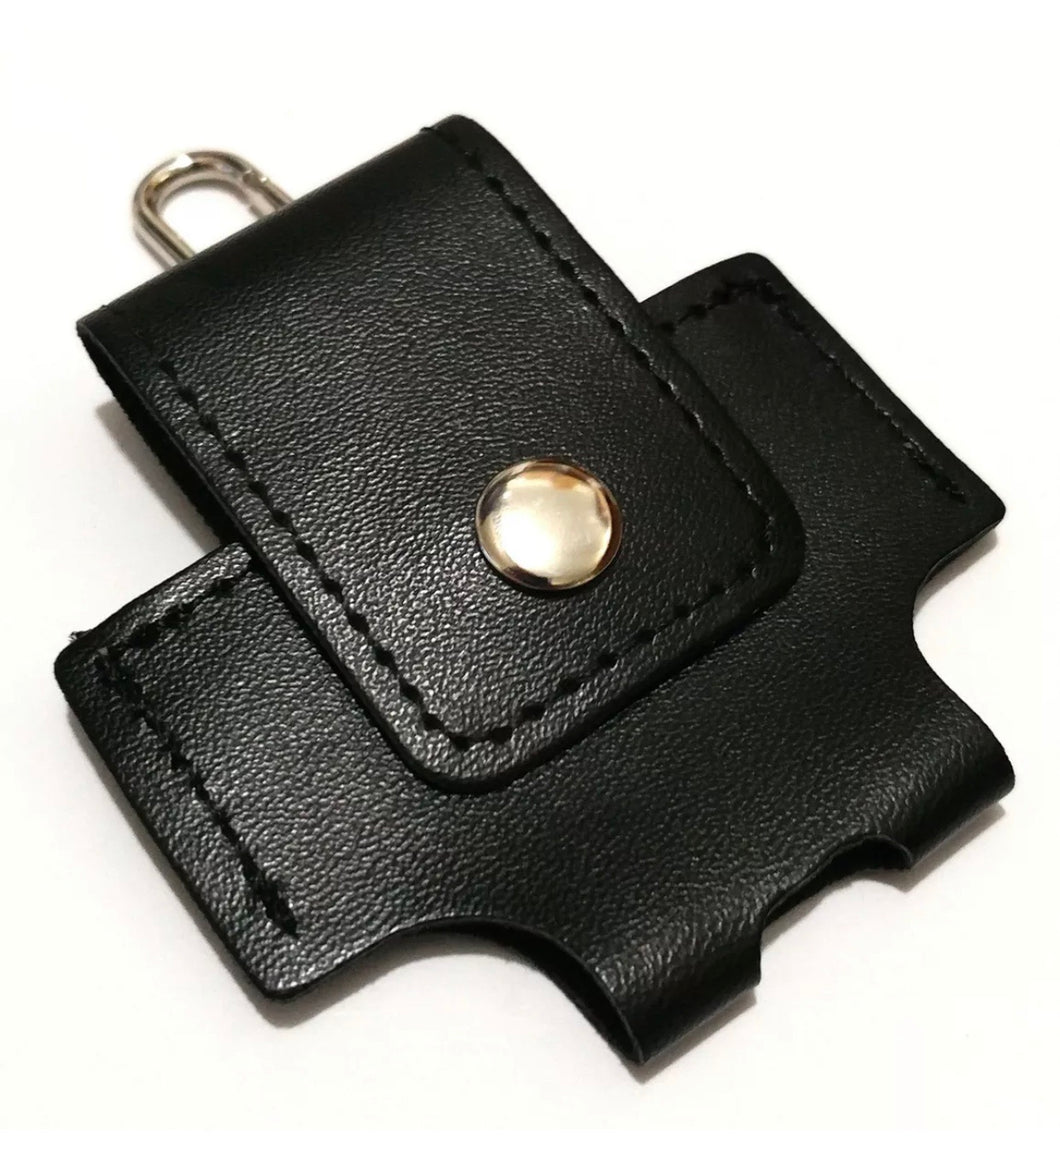 Leather Clip AirPod Case (8 designs)